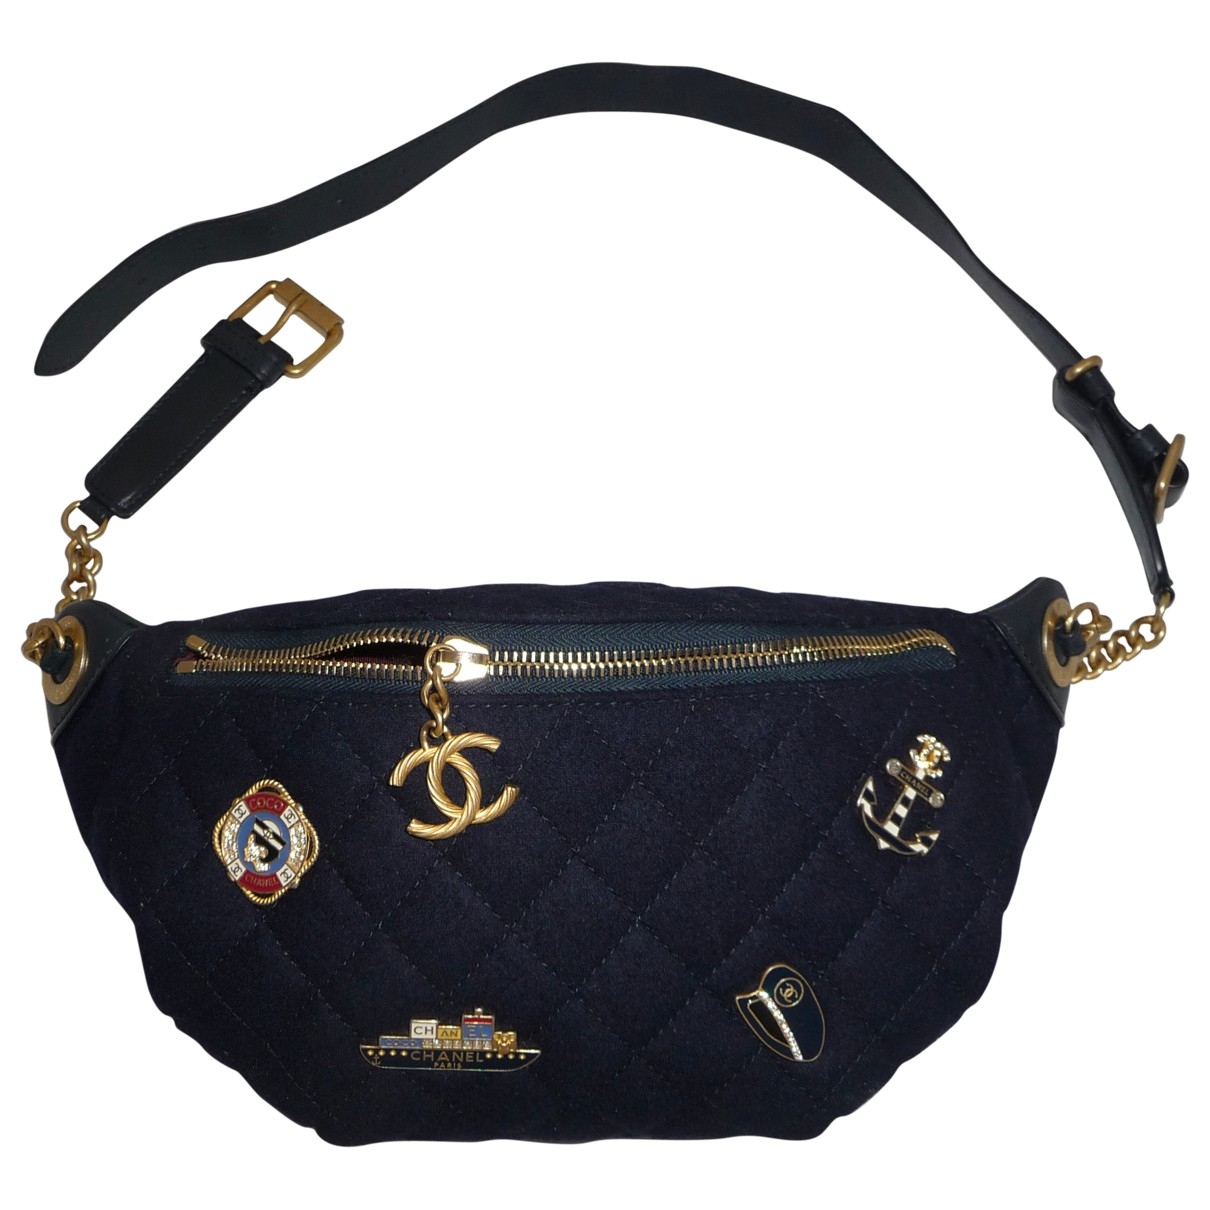 Chanel \N Navy Leather Clutch bag for Women \N